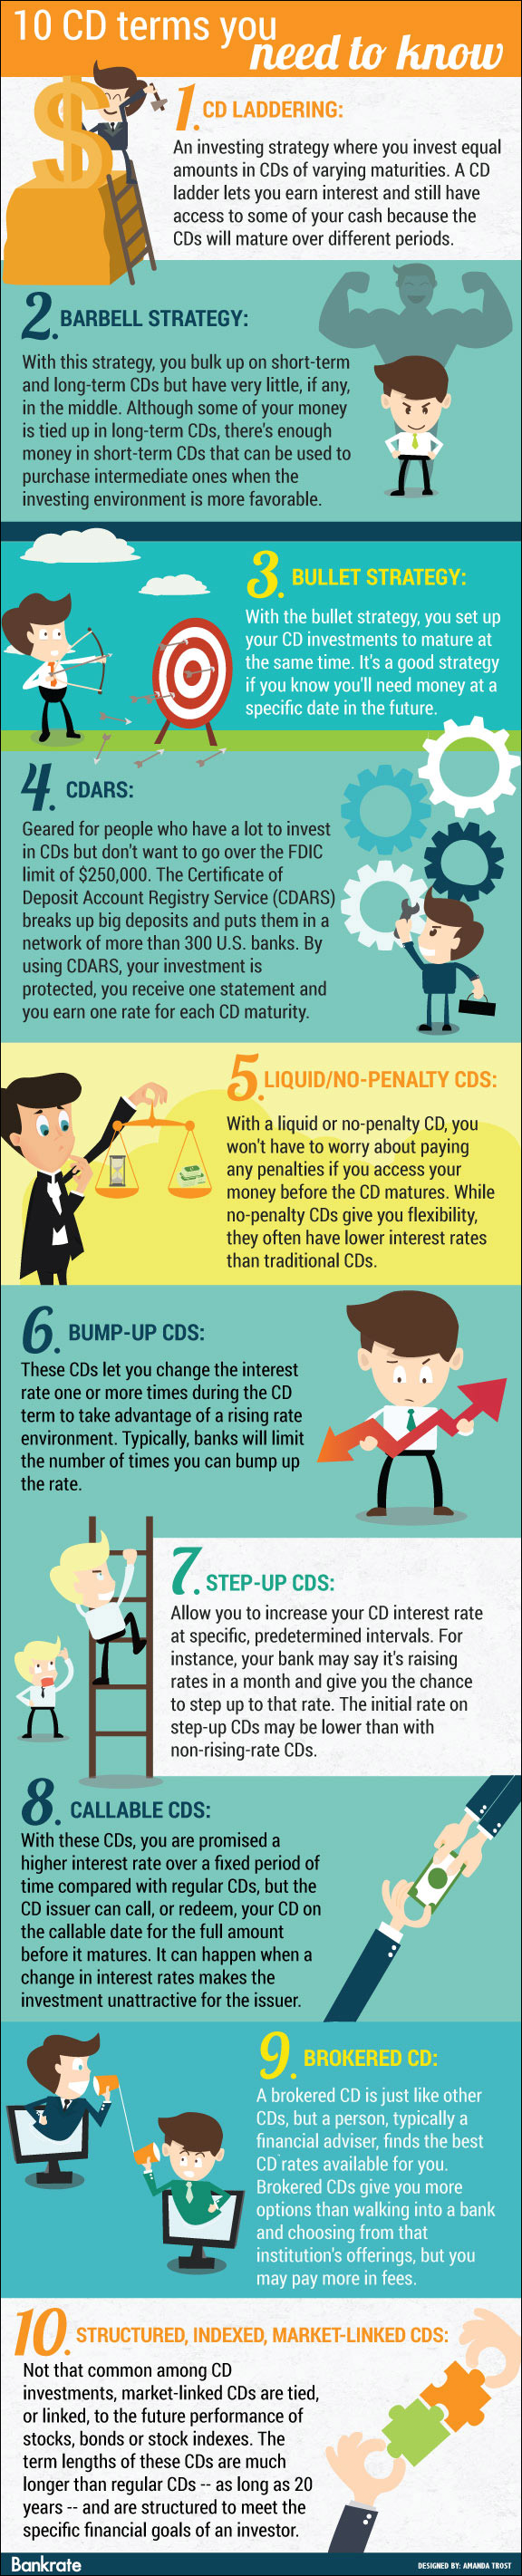 Infographic 10 Cd Definitions You Need To Know Pinterest